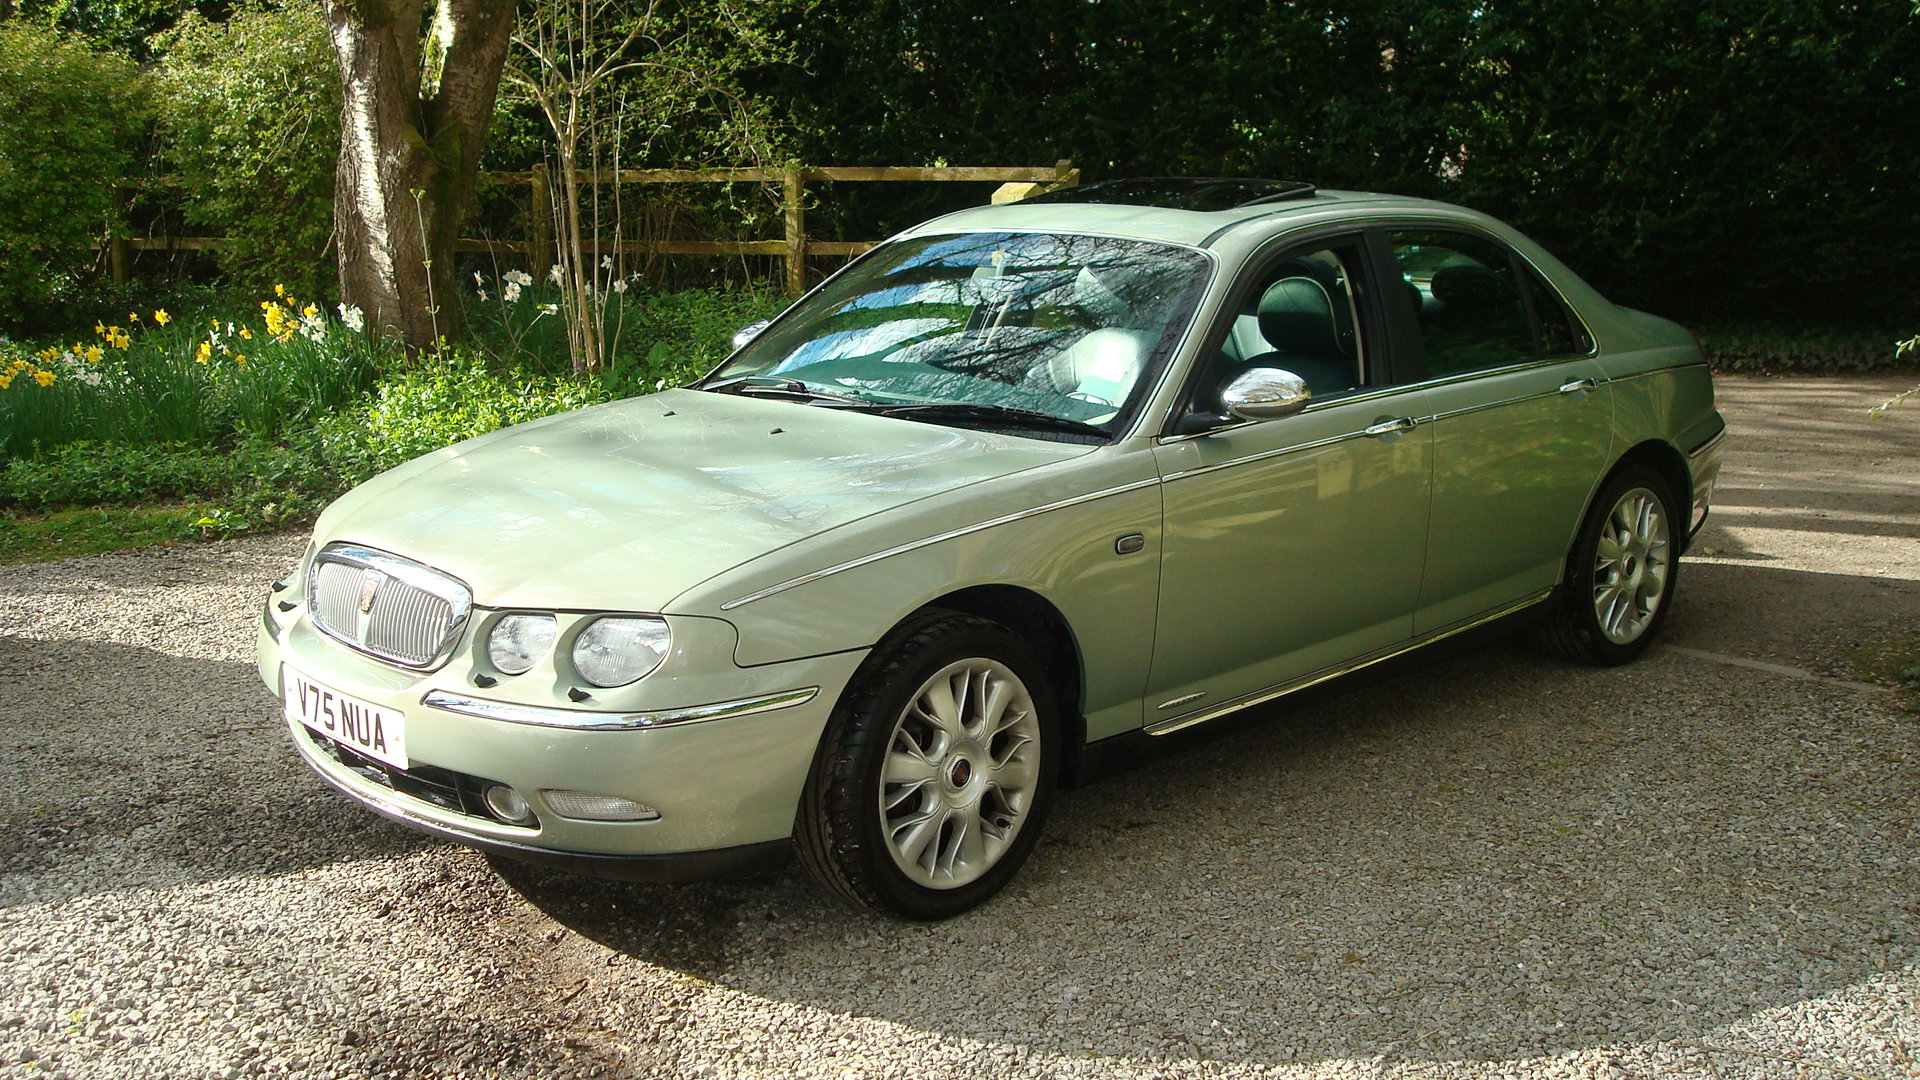 Rover 75 2.5 V6 Connoisseur ( Exceptional Low Mileage Car) - Country Classics : Country Classics